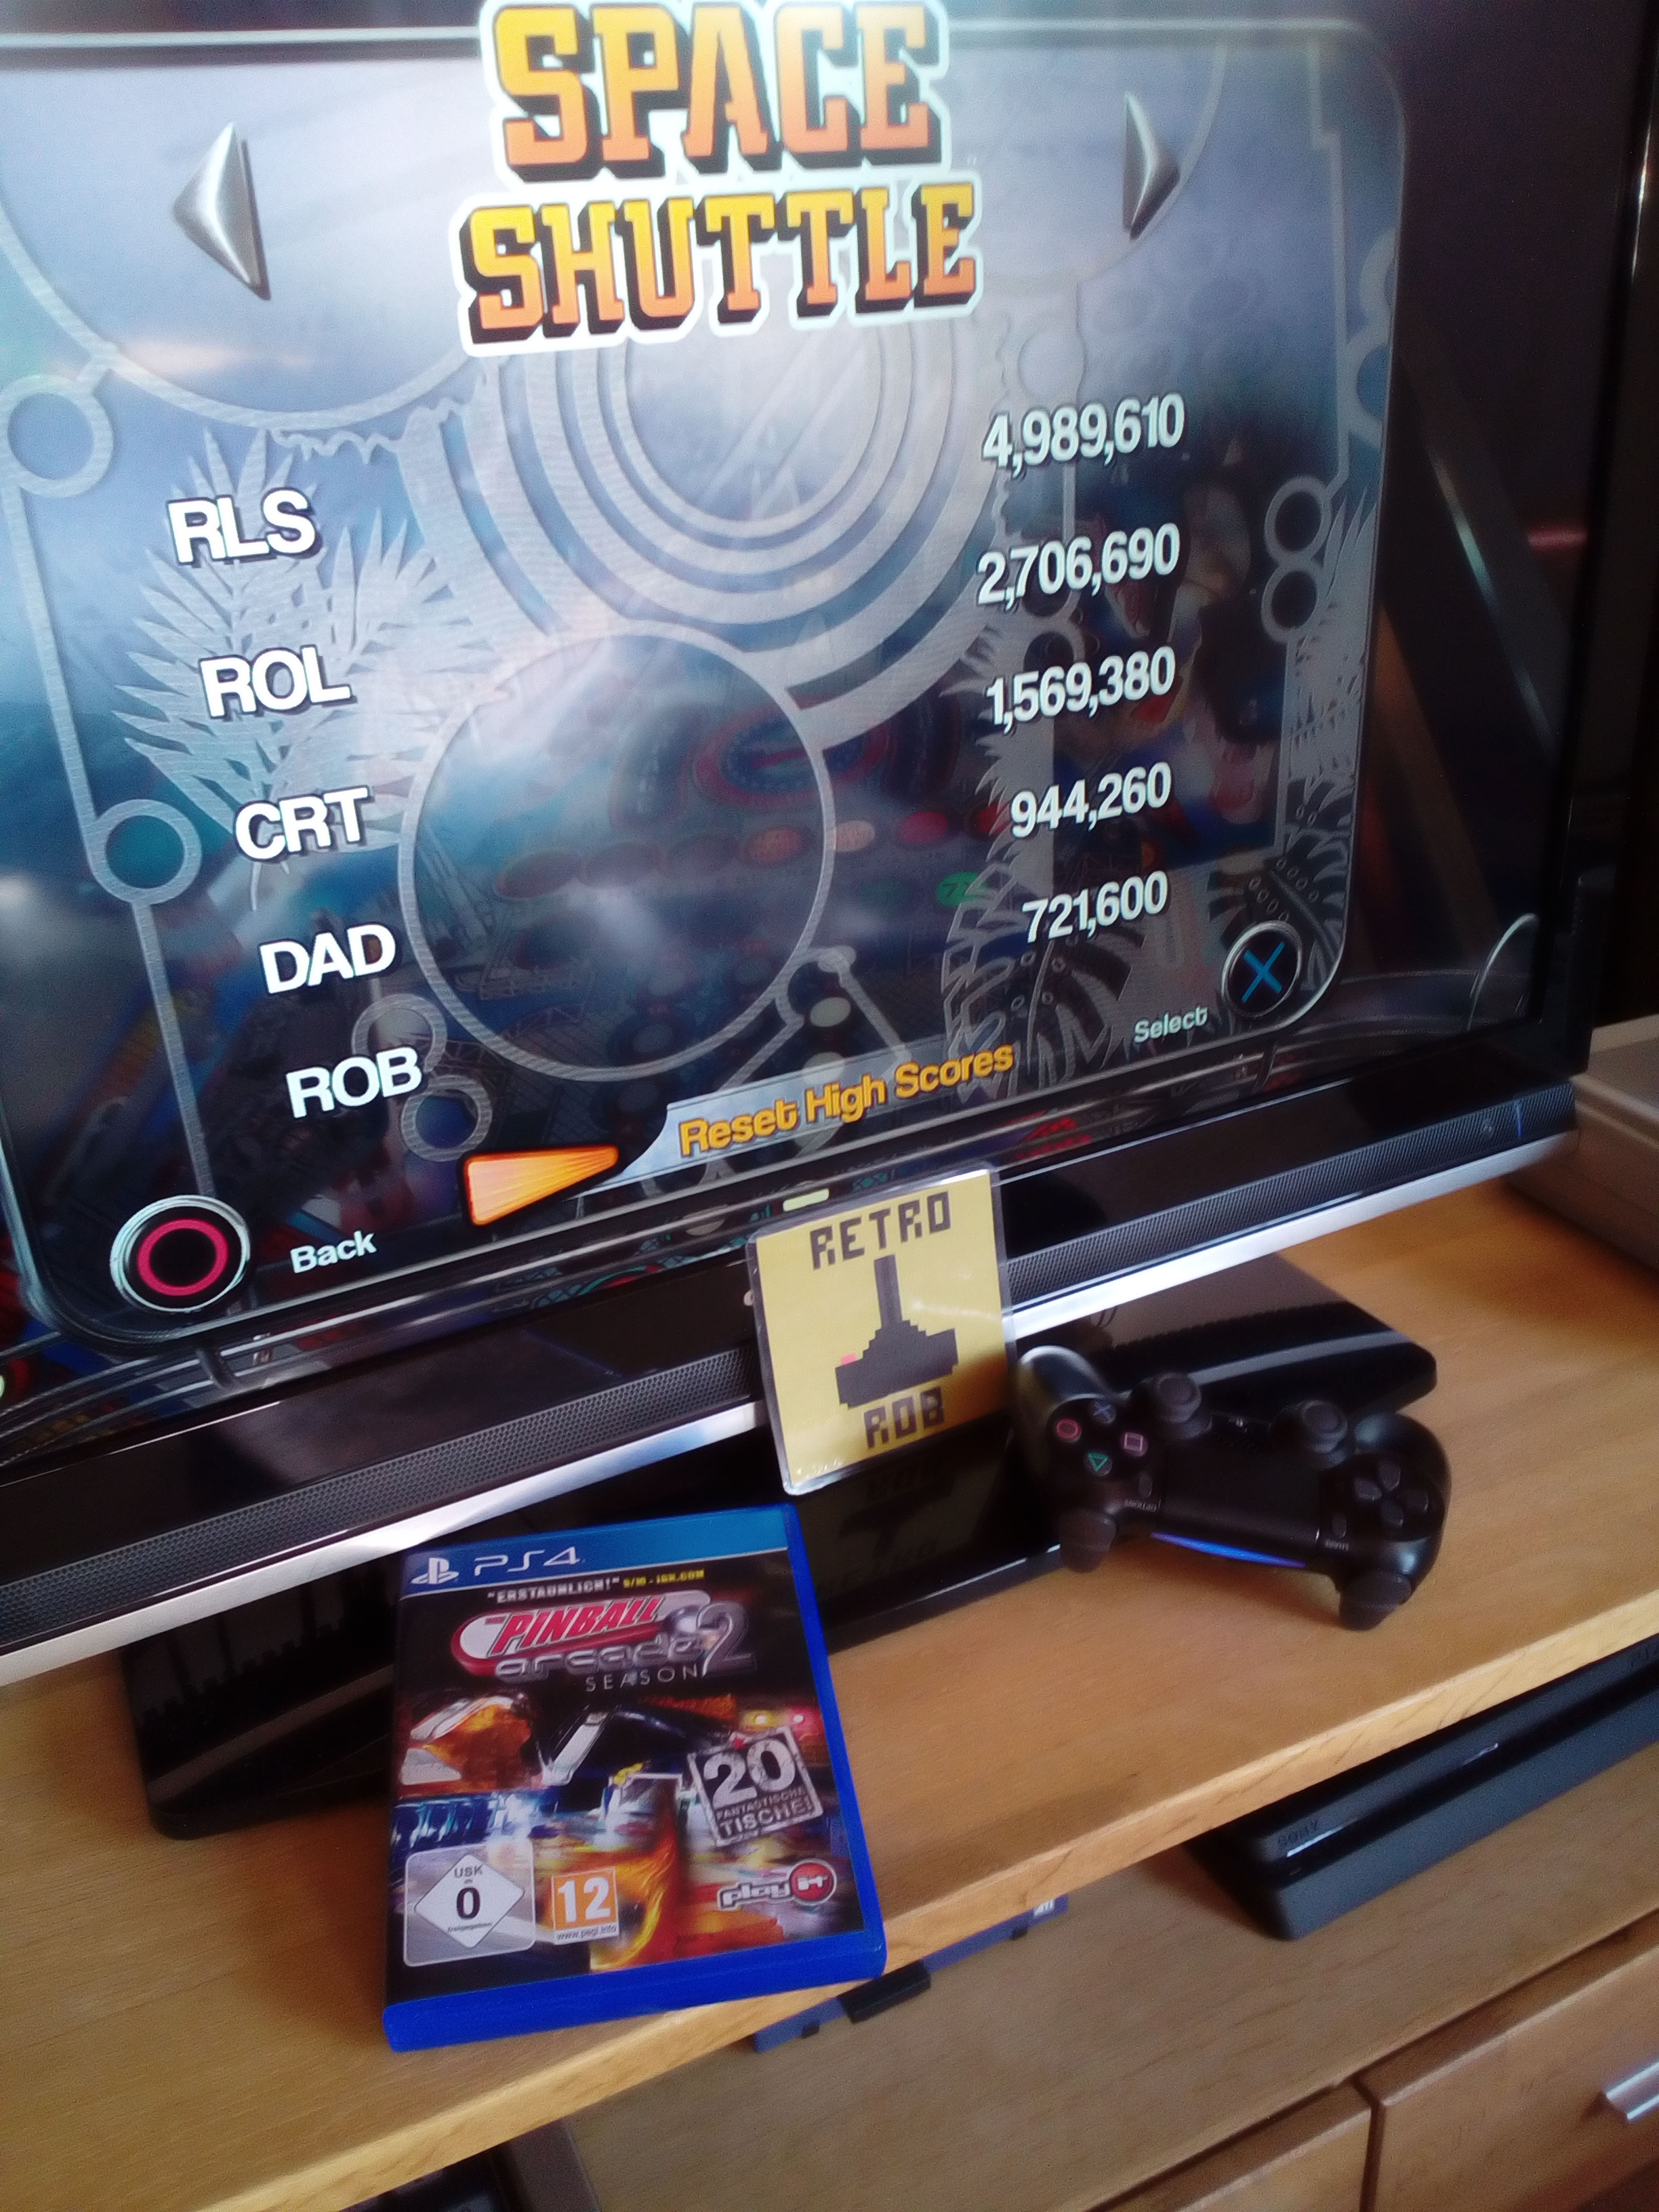 RetroRob: Pinball Arcade: Space Shuttle (Playstation 4) 721,600 points on 2020-05-05 12:27:35